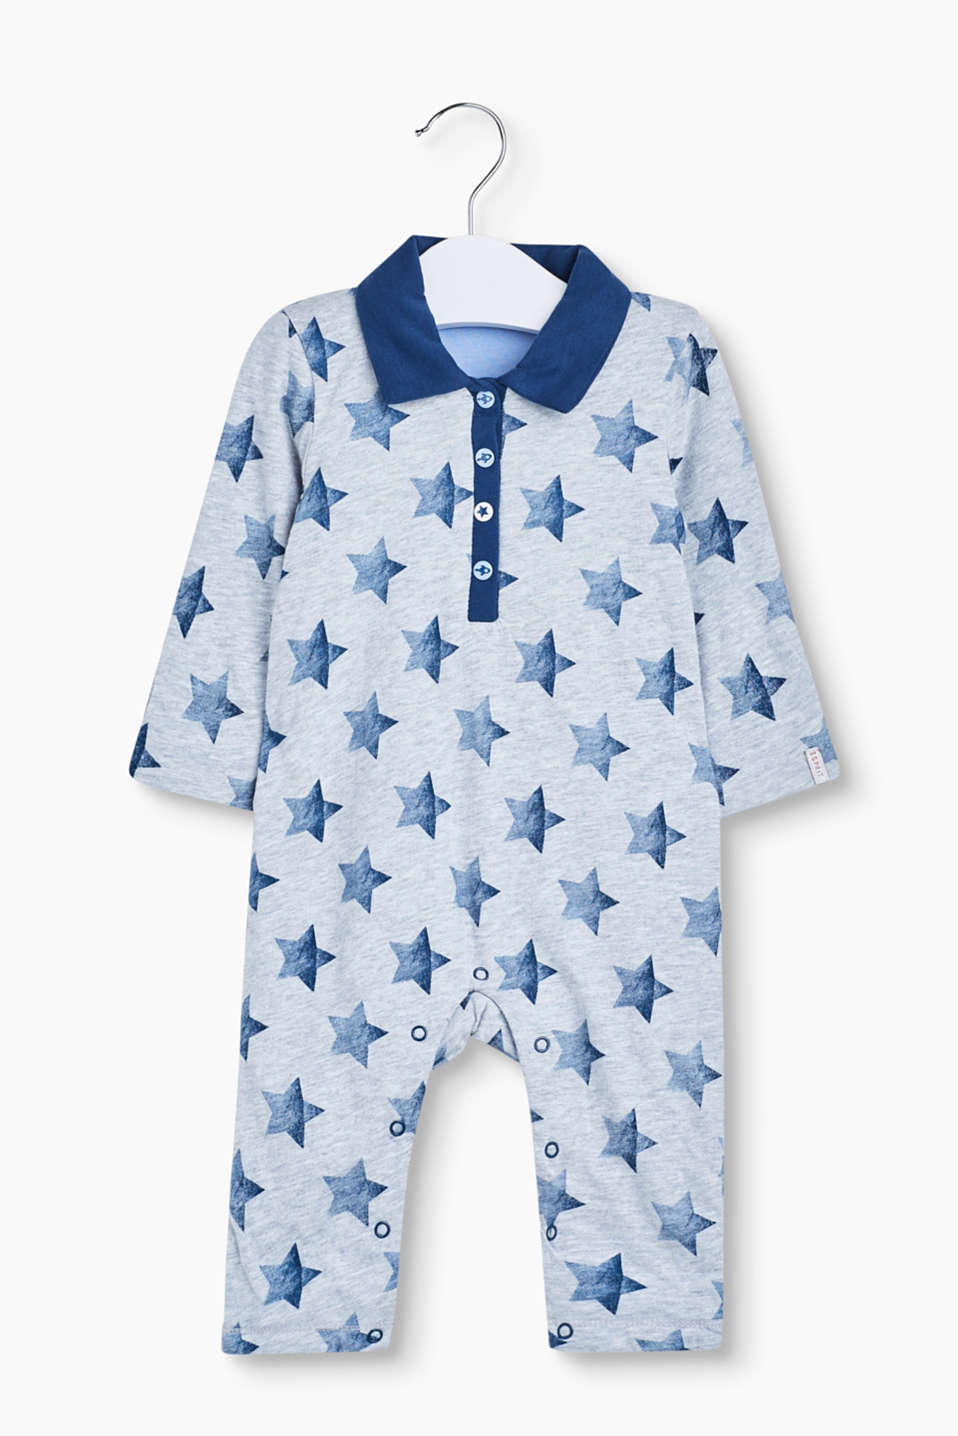 With a polo collar and a star print: this romper suit in soft, double layered jersey